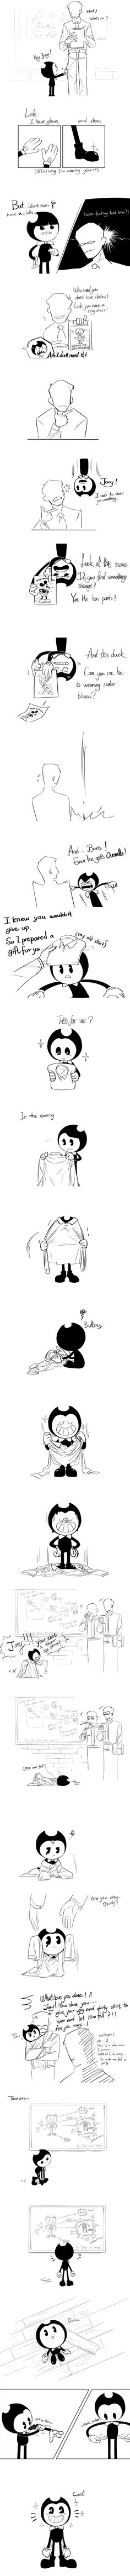 The Gift | Bendy And The Ink Machine Comic by https://always-x3.tumblr.com/post/159940616077/im-too-lazy-to-design-joeys-face-part-2-part-3